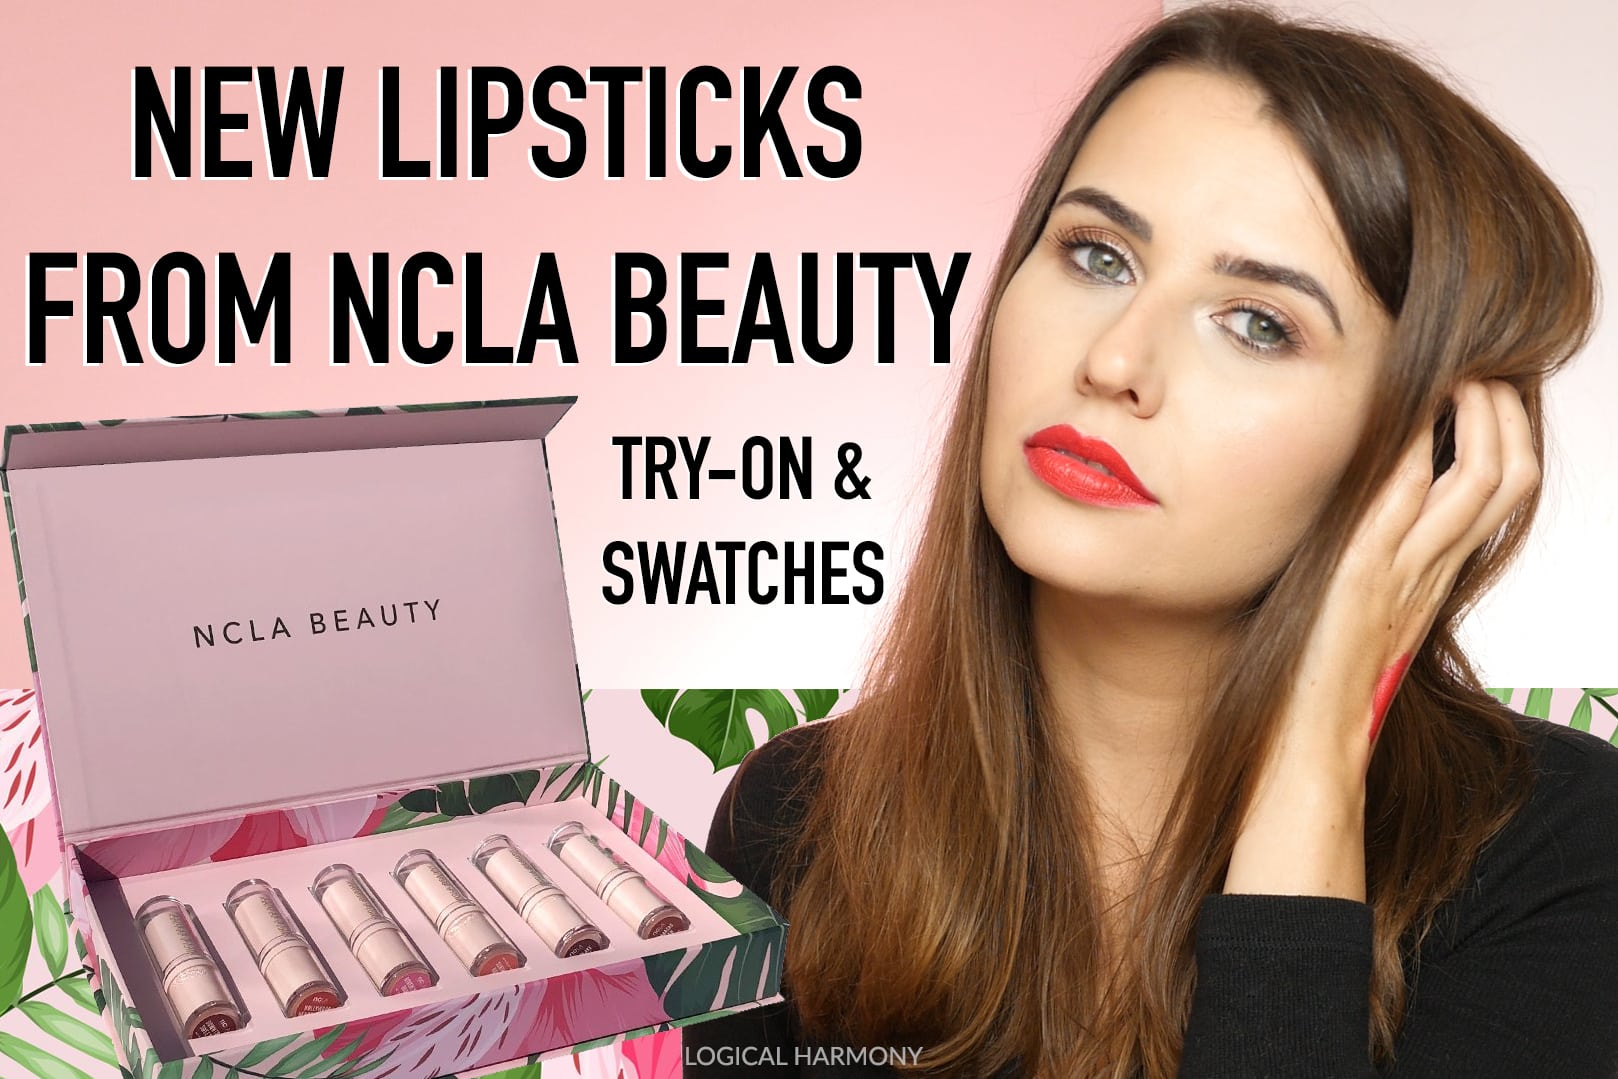 NCLA Beauty Lipstick Try-On & Swatches